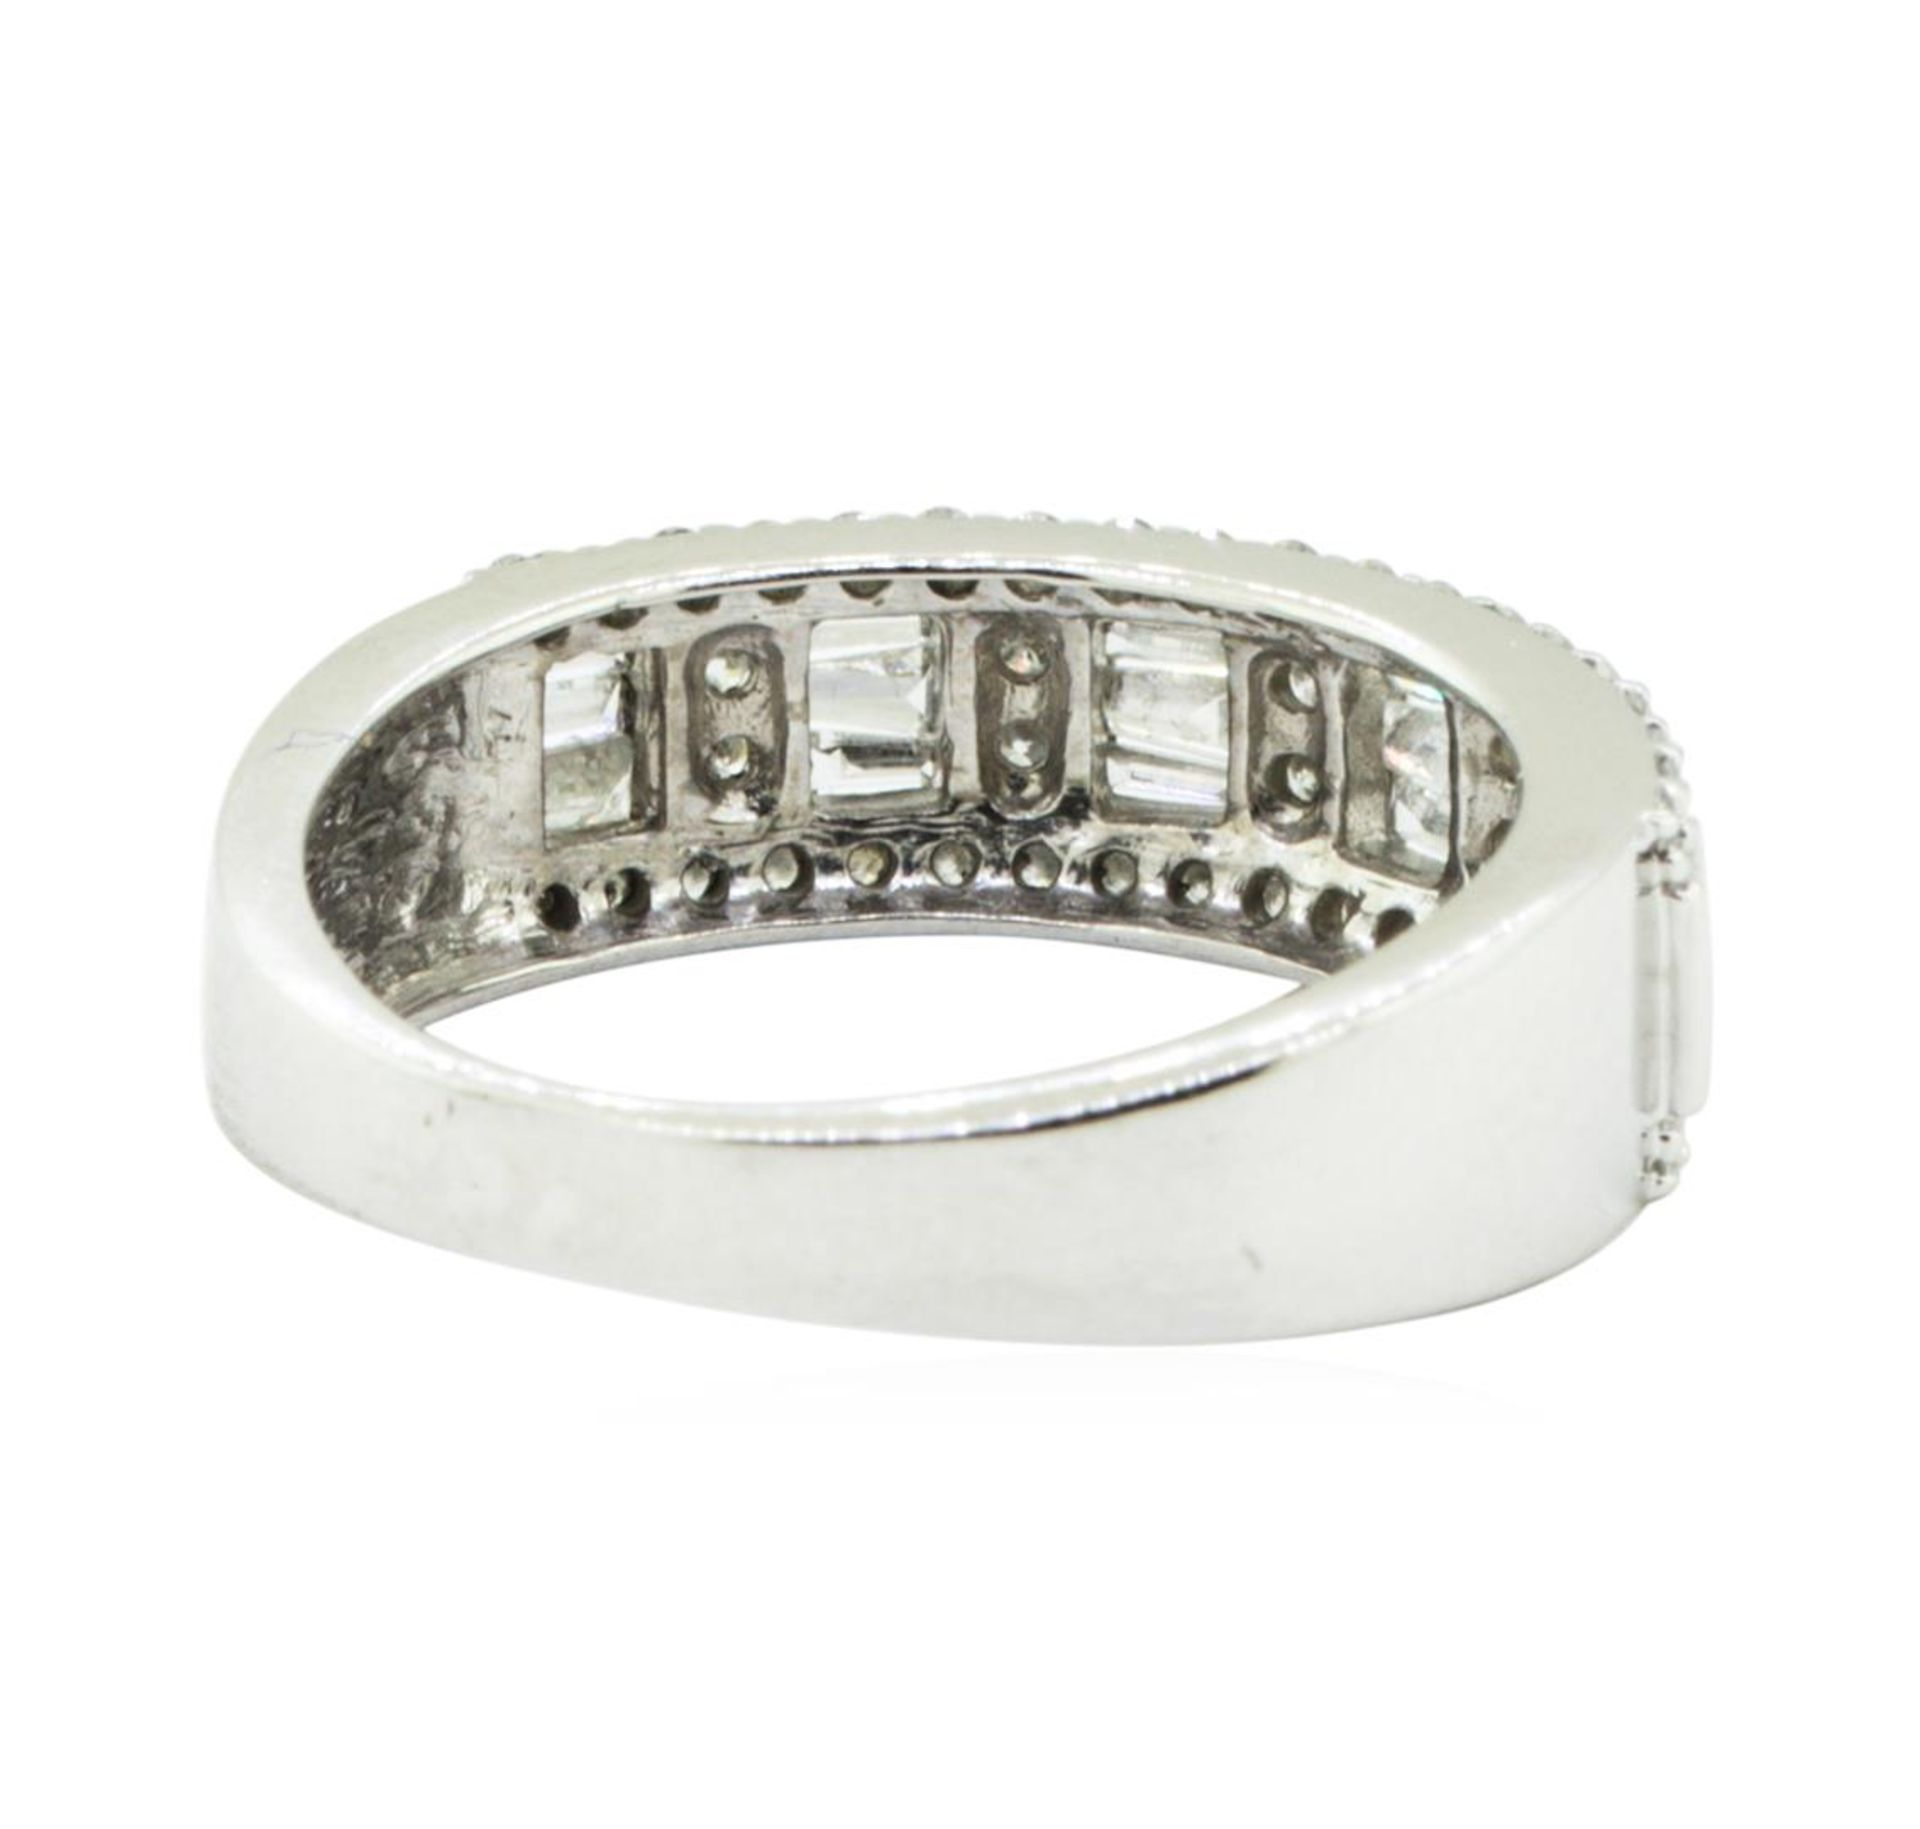 1.00 ctw Diamond Ring - 14KT White Gold - Image 3 of 4